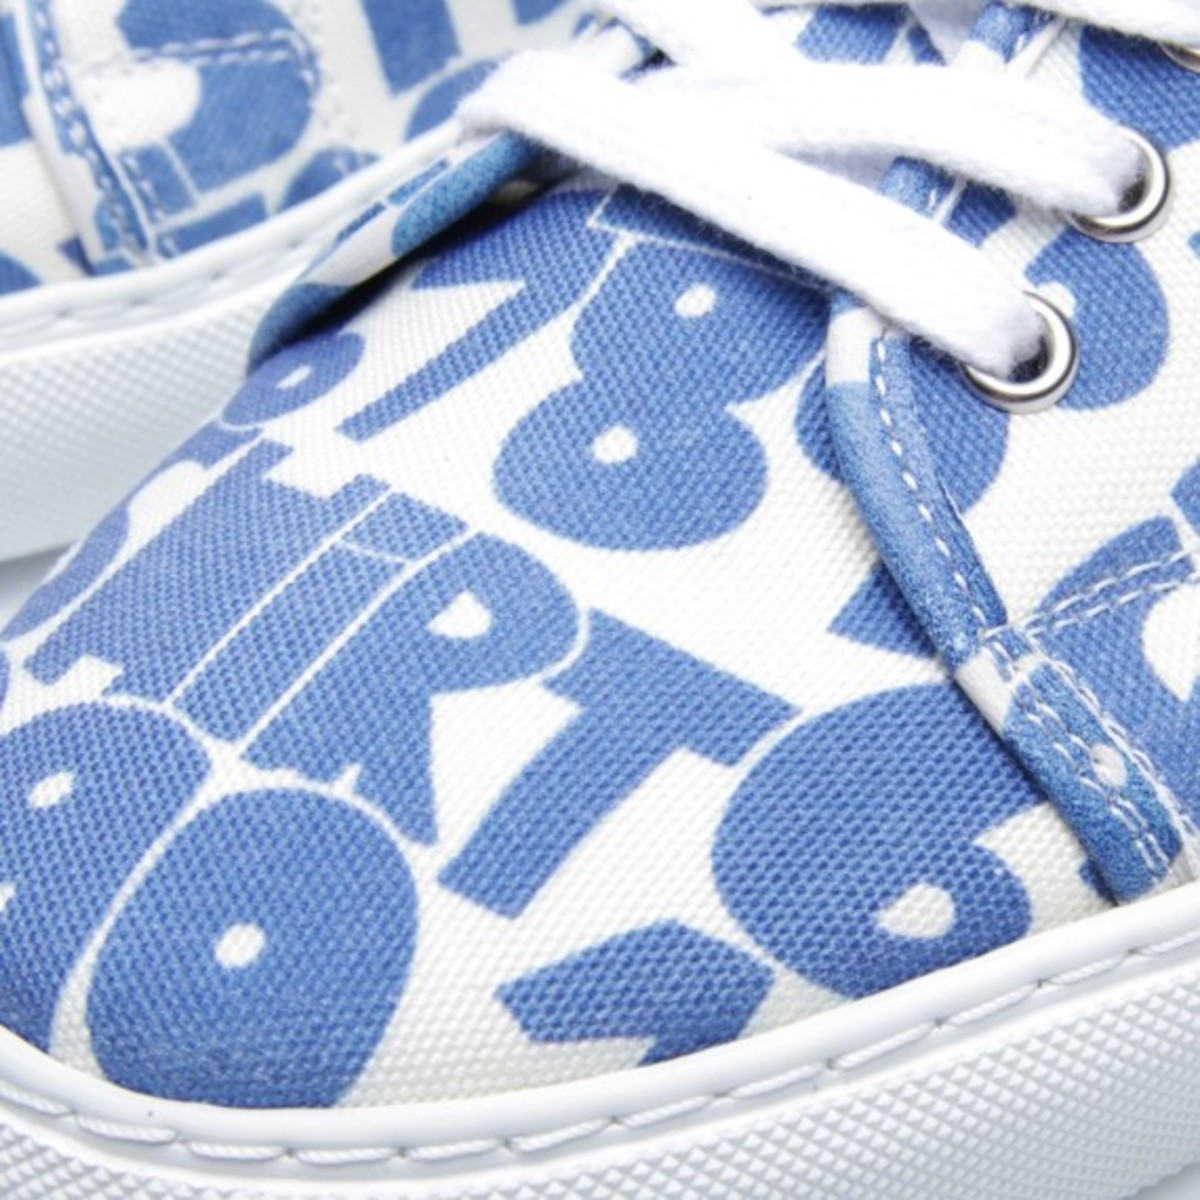 comme-des-garcons-shirt-the-generic-man-print-sneakers-12